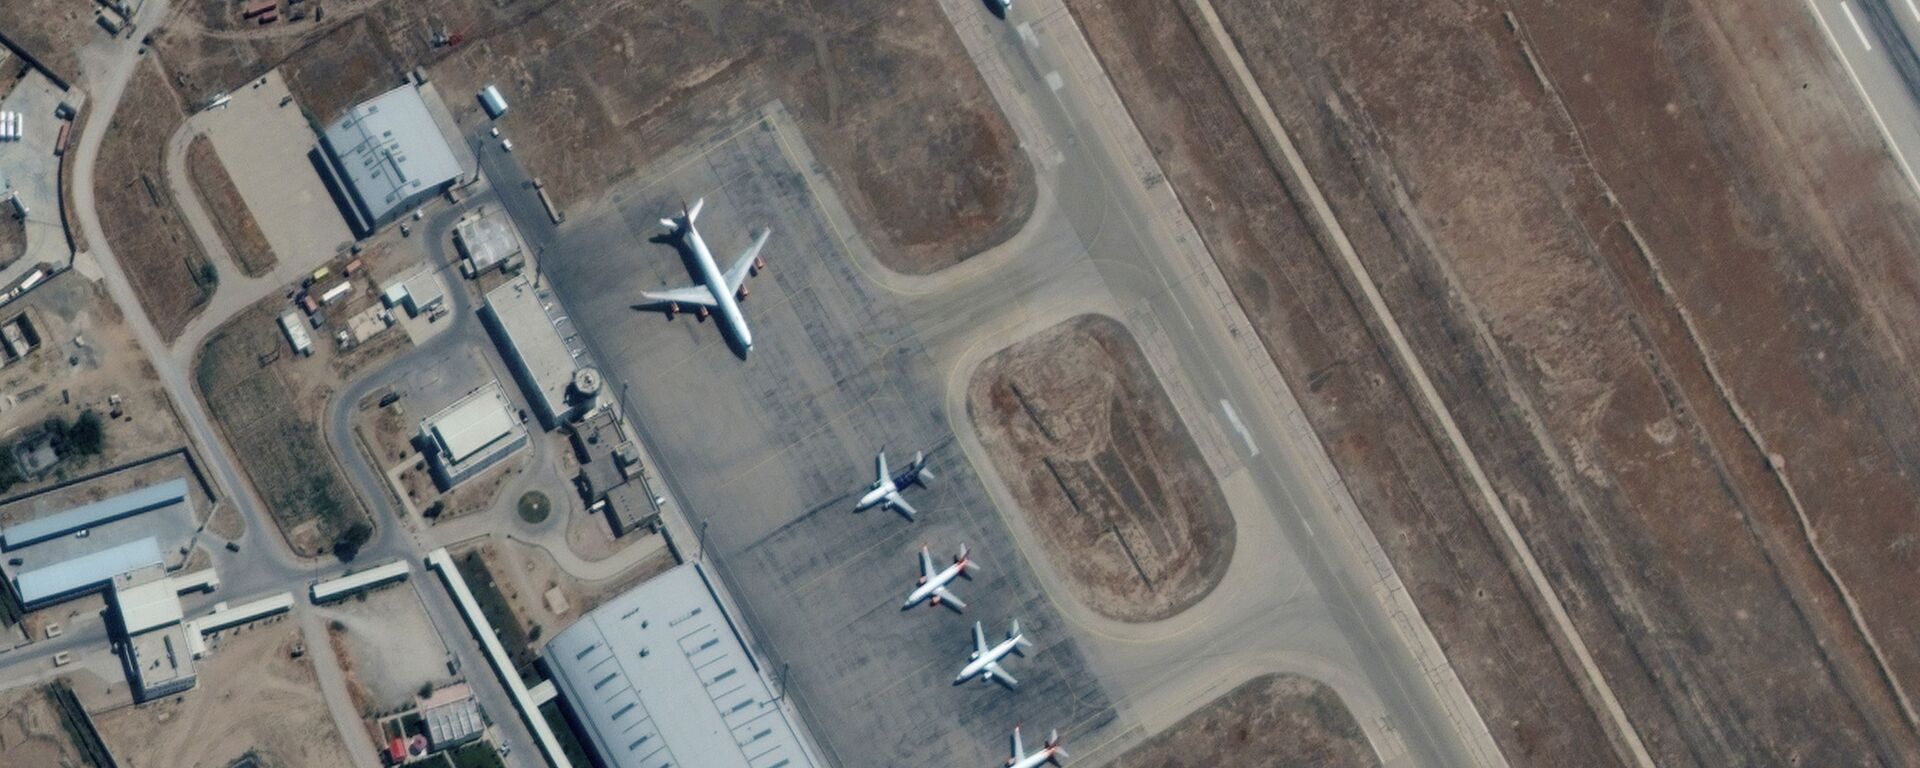 Six commercial airplanes are seen near the main terminal of the Mazar-i-Sharif airport, in northern Afghanistan, September 3 2021. Picture taken September 3, 2021. - Sputnik International, 1920, 05.09.2021